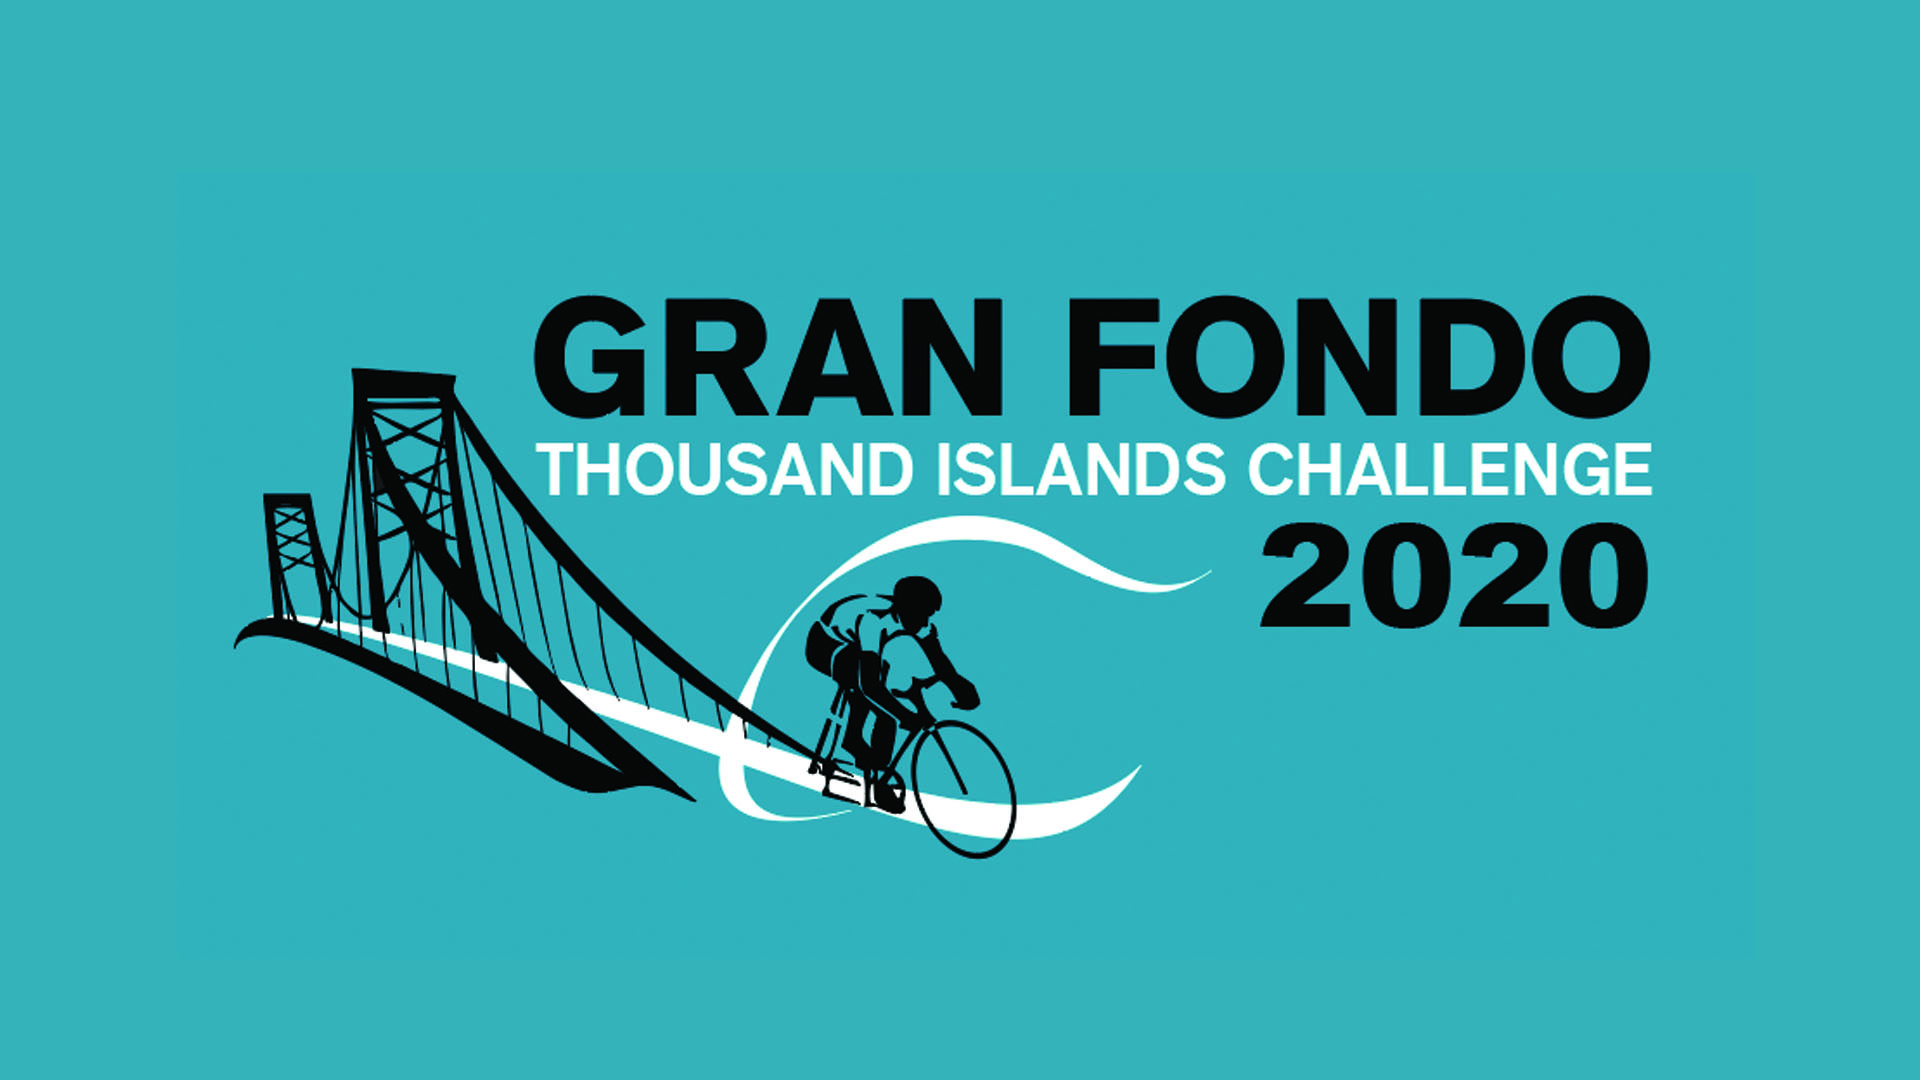 Gran Fondo: Thousand Islands Challenge Image